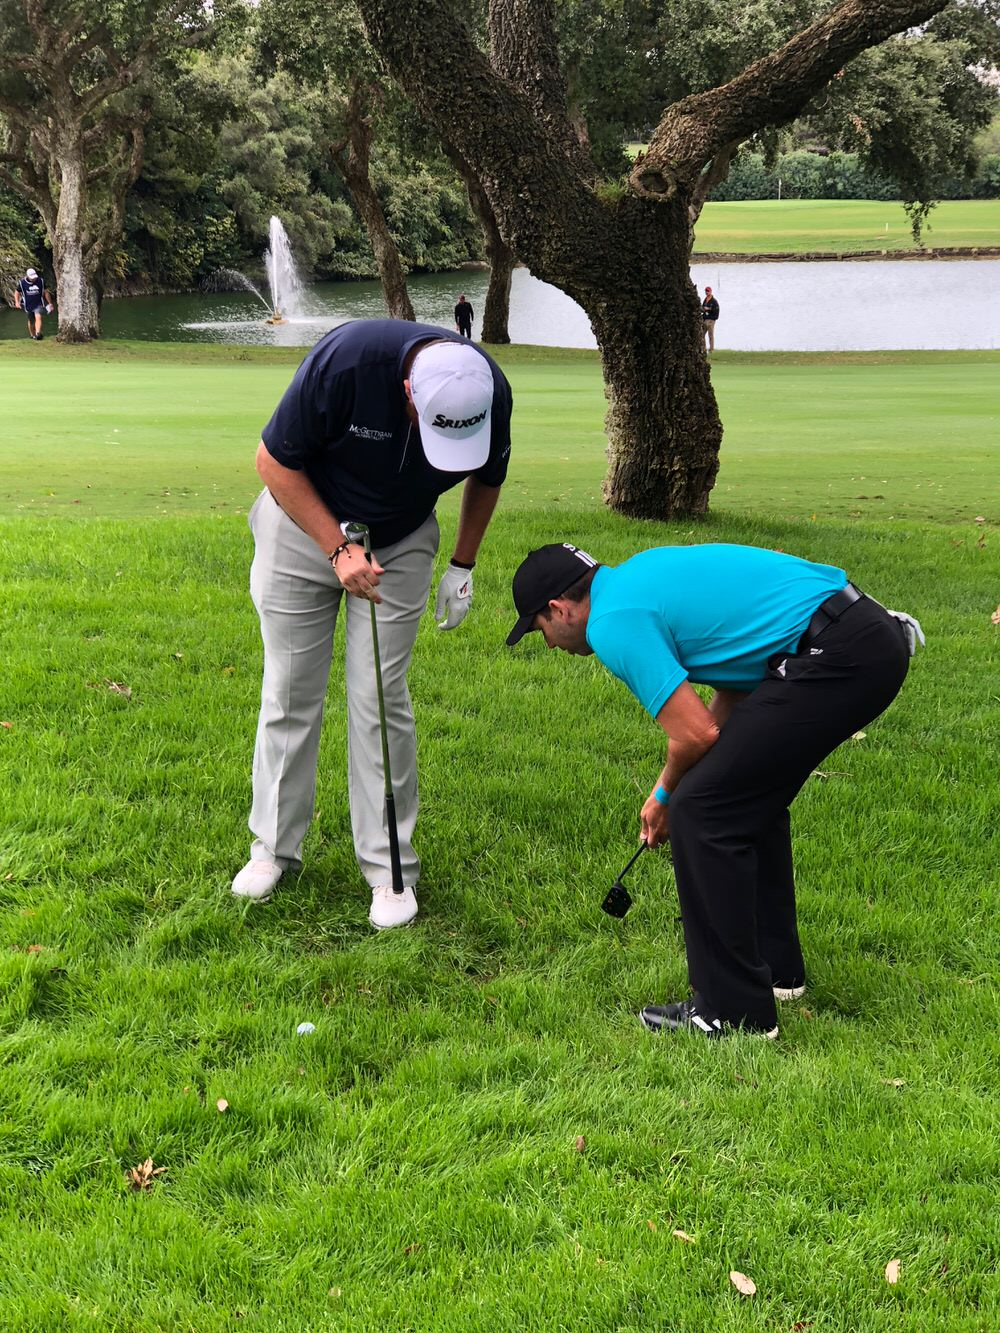 Shane Lowry asks Sergio Garcia to confirm he can take relief from casual water on the 18th hole at a soggy Valderrama. Garcia signed for a five under par round of 66 while Lowry had to settle for a one over par 72. Picture courtesy Denis Kirwan/Meridian Media